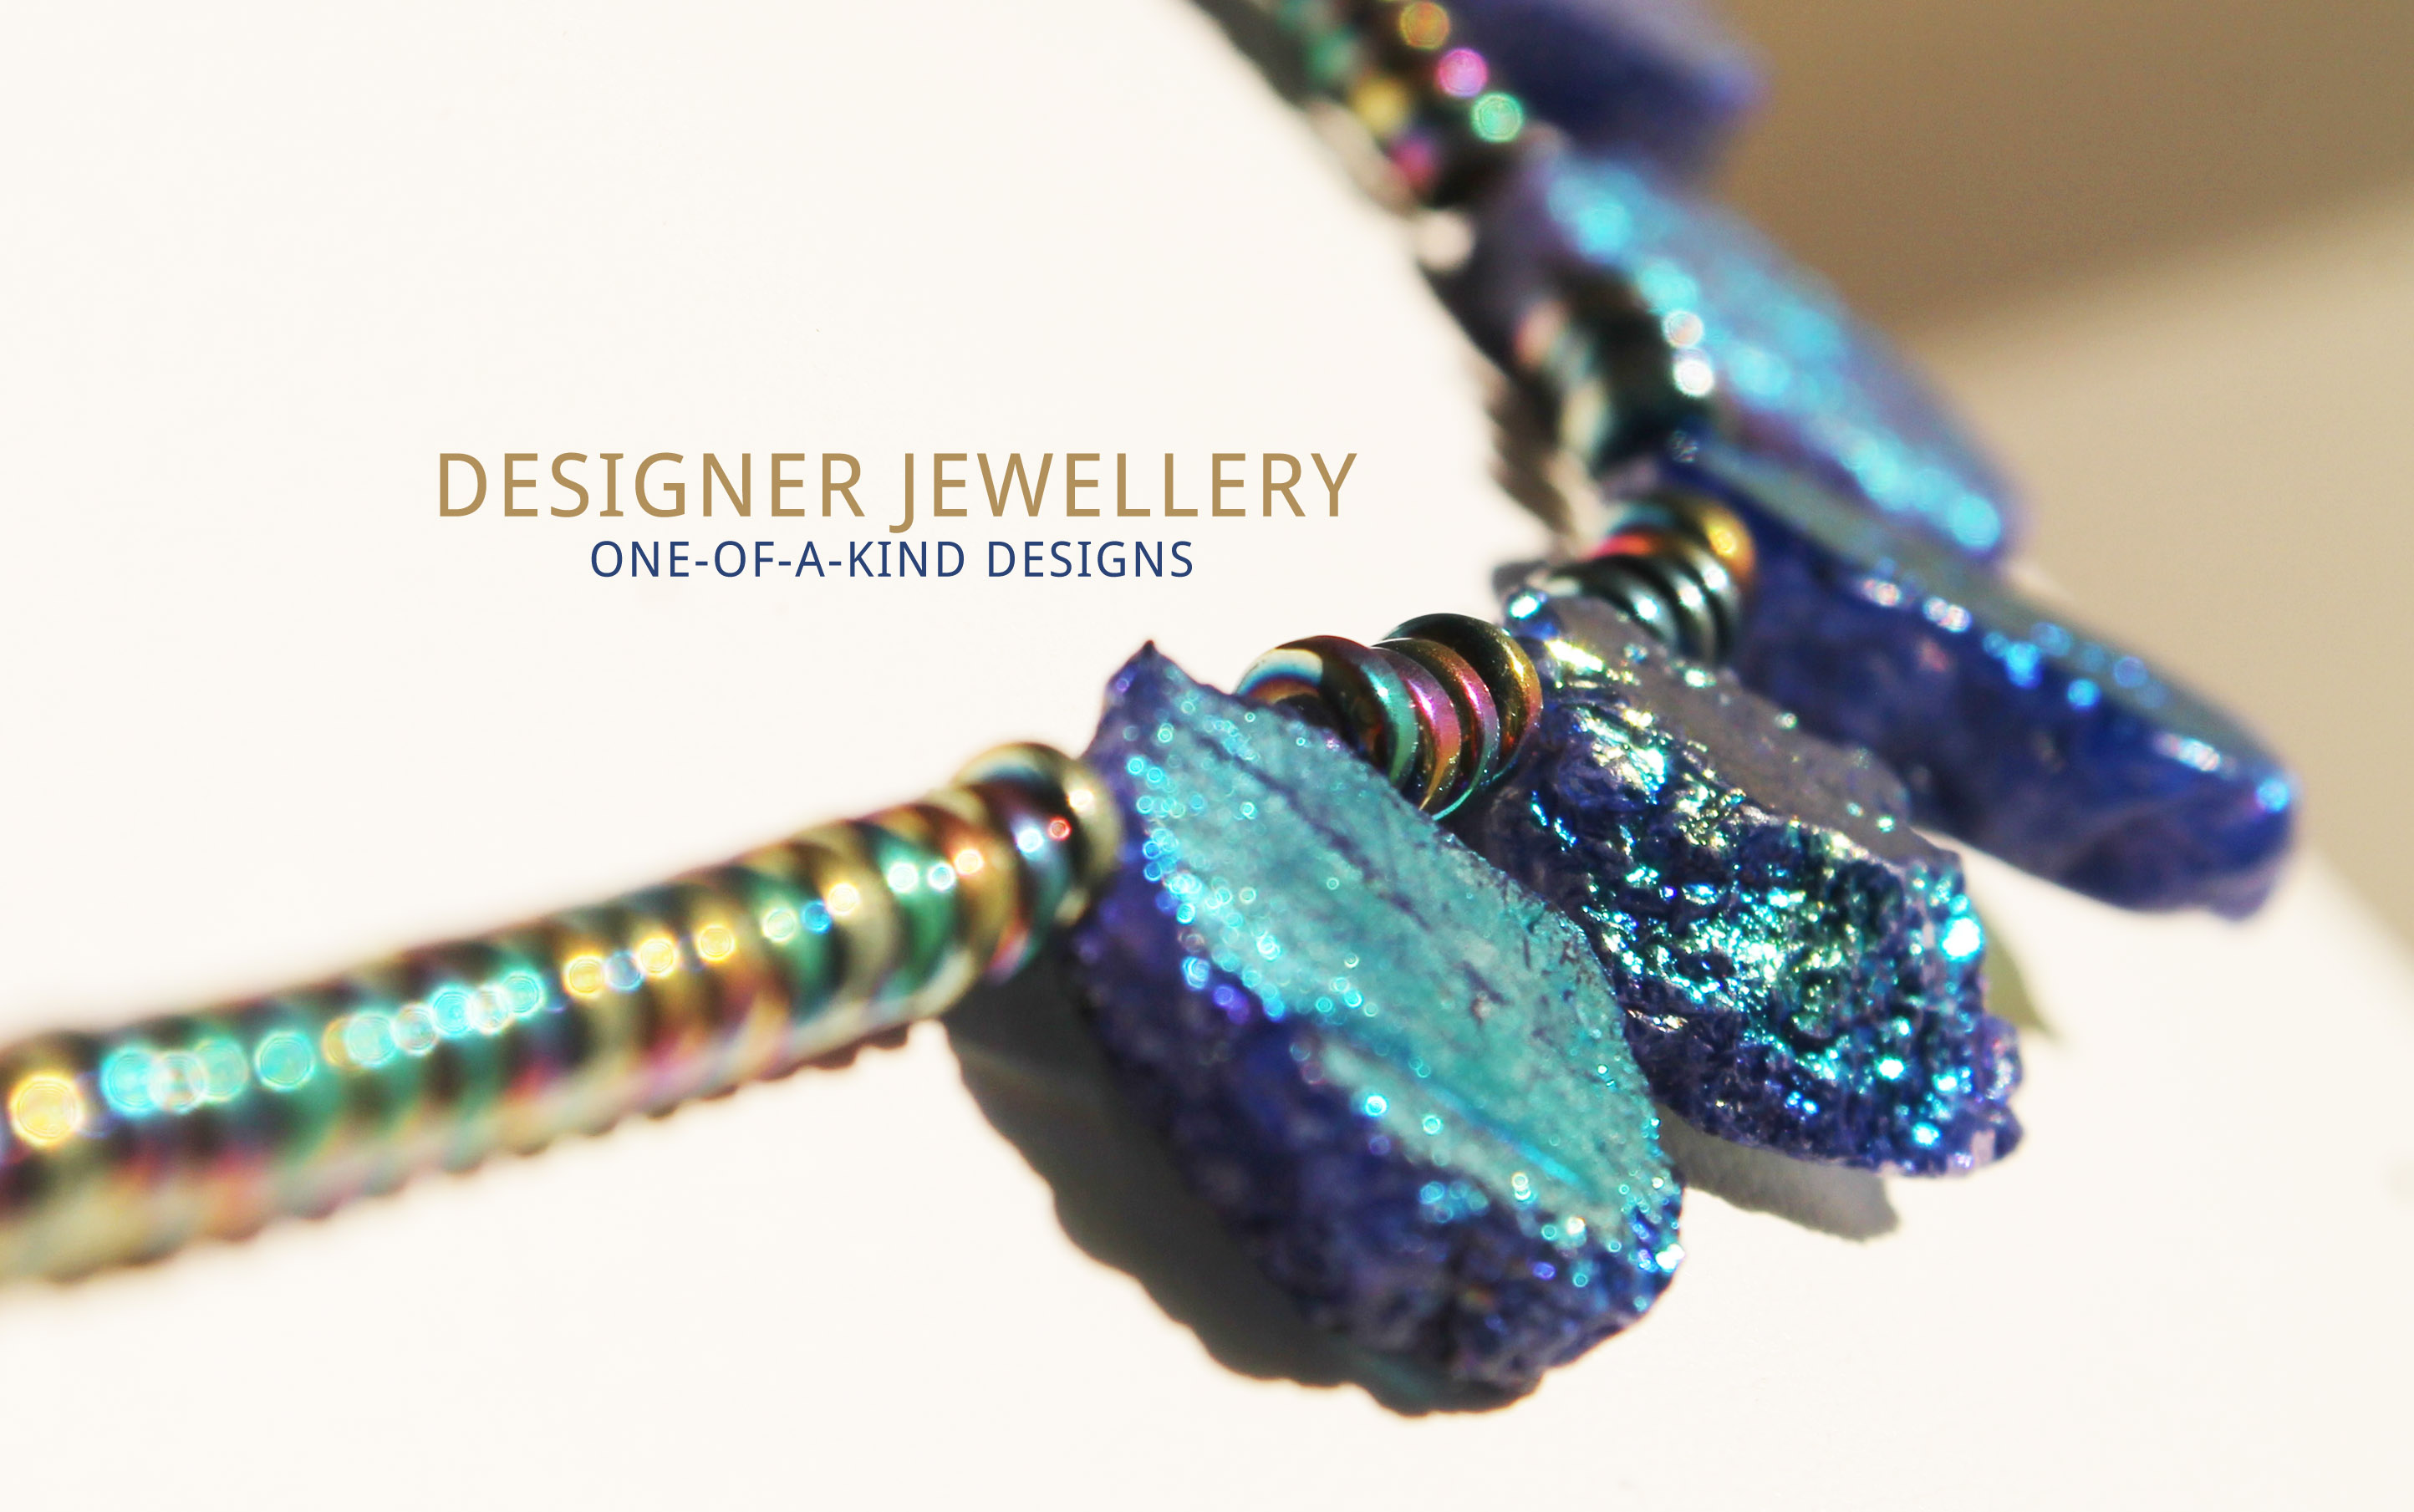 One-of-a-kind designer jewellery from Shaheen Jewellery